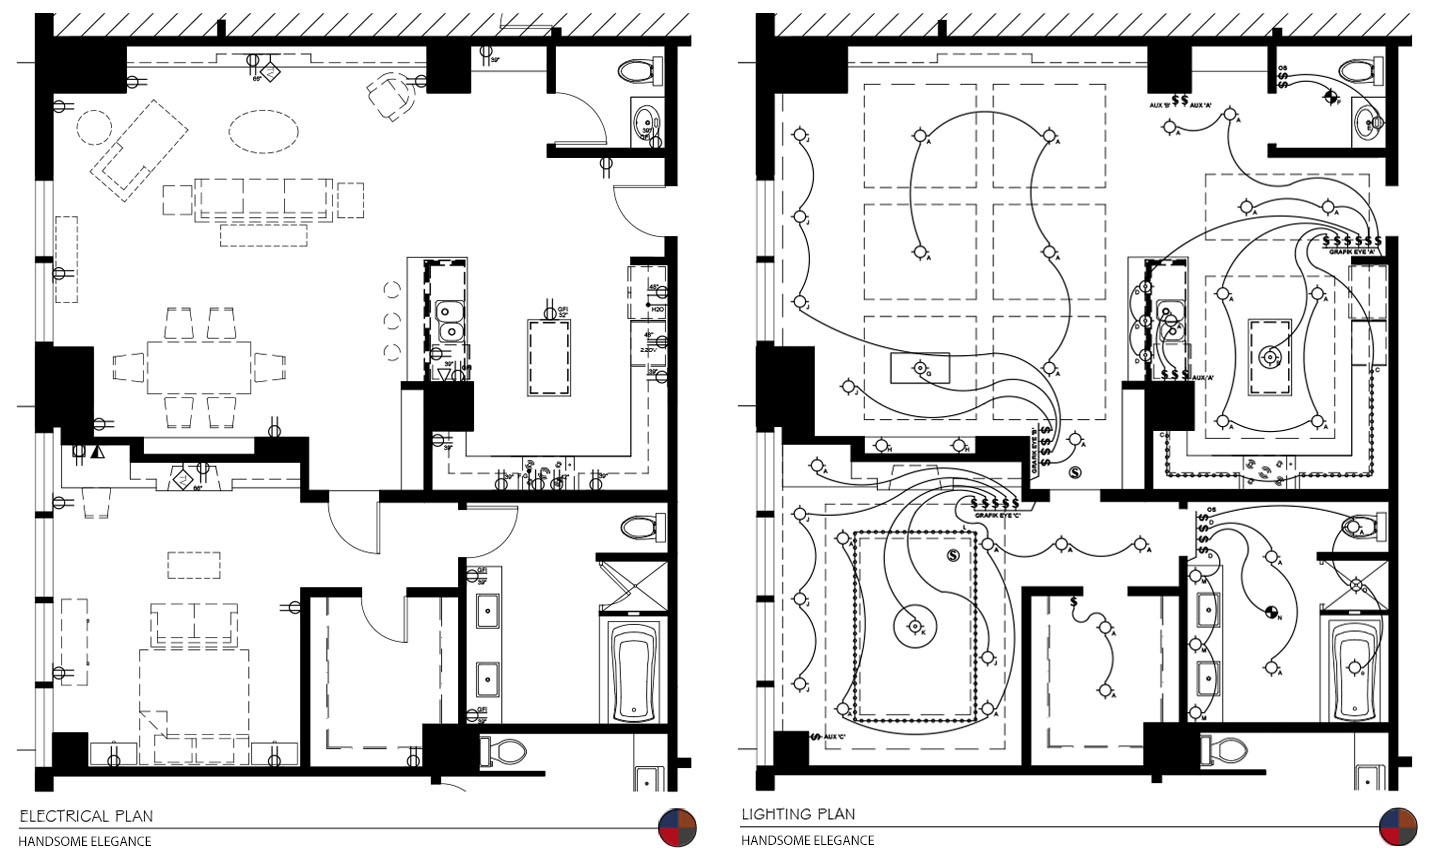 bedroom lighting layout turned to design june 2013 10534